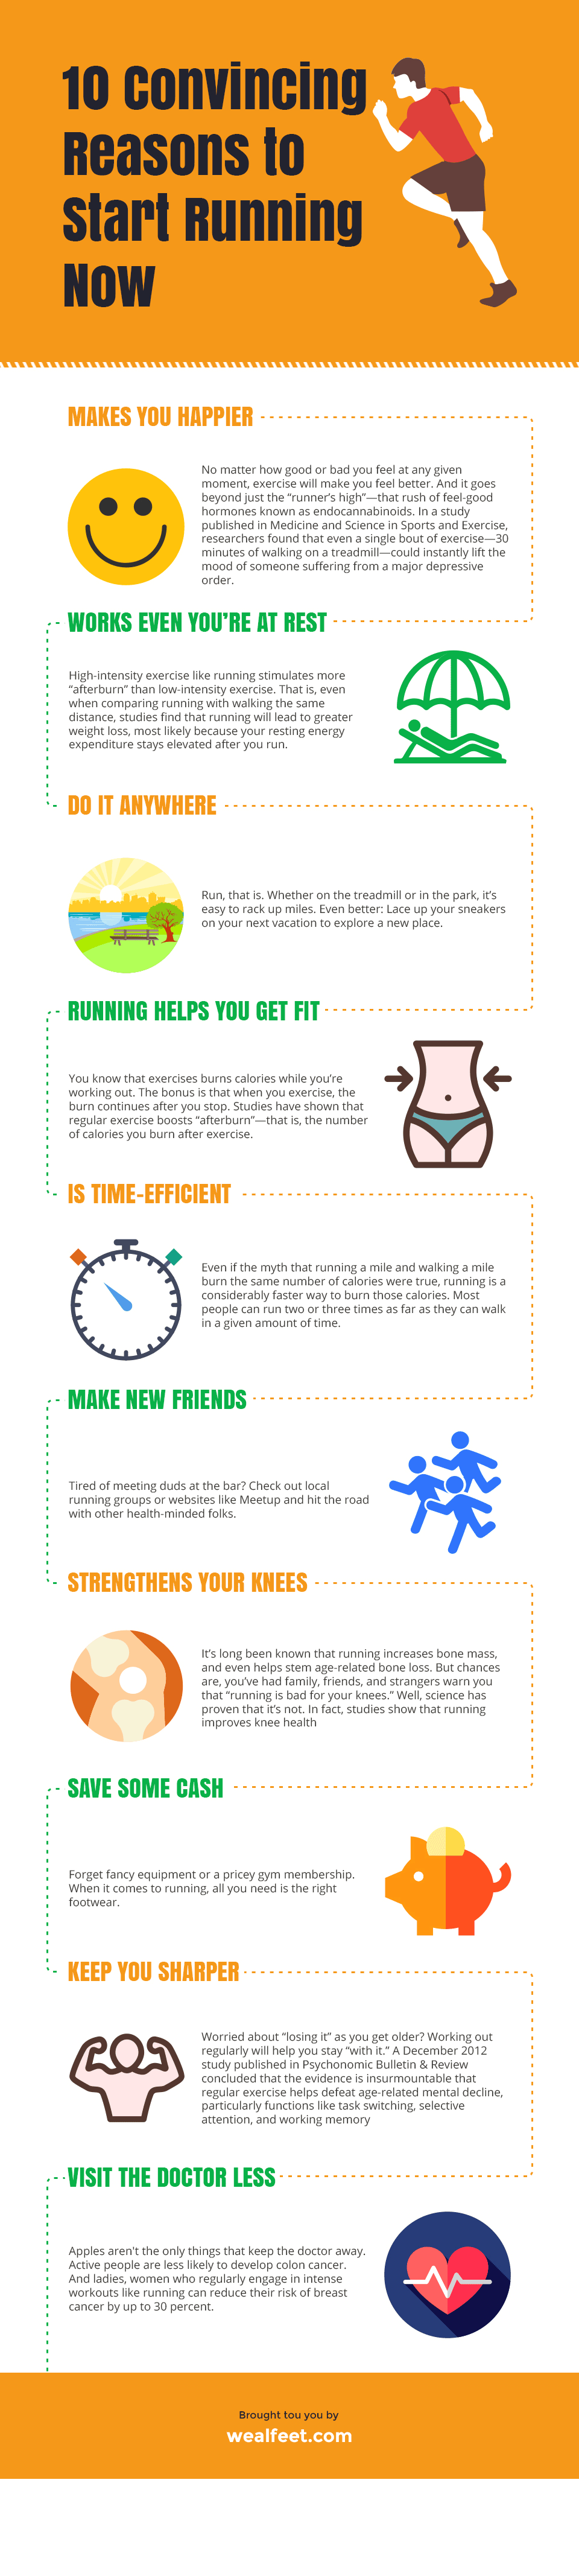 10-convincing-reasons-to-start-running-infographic